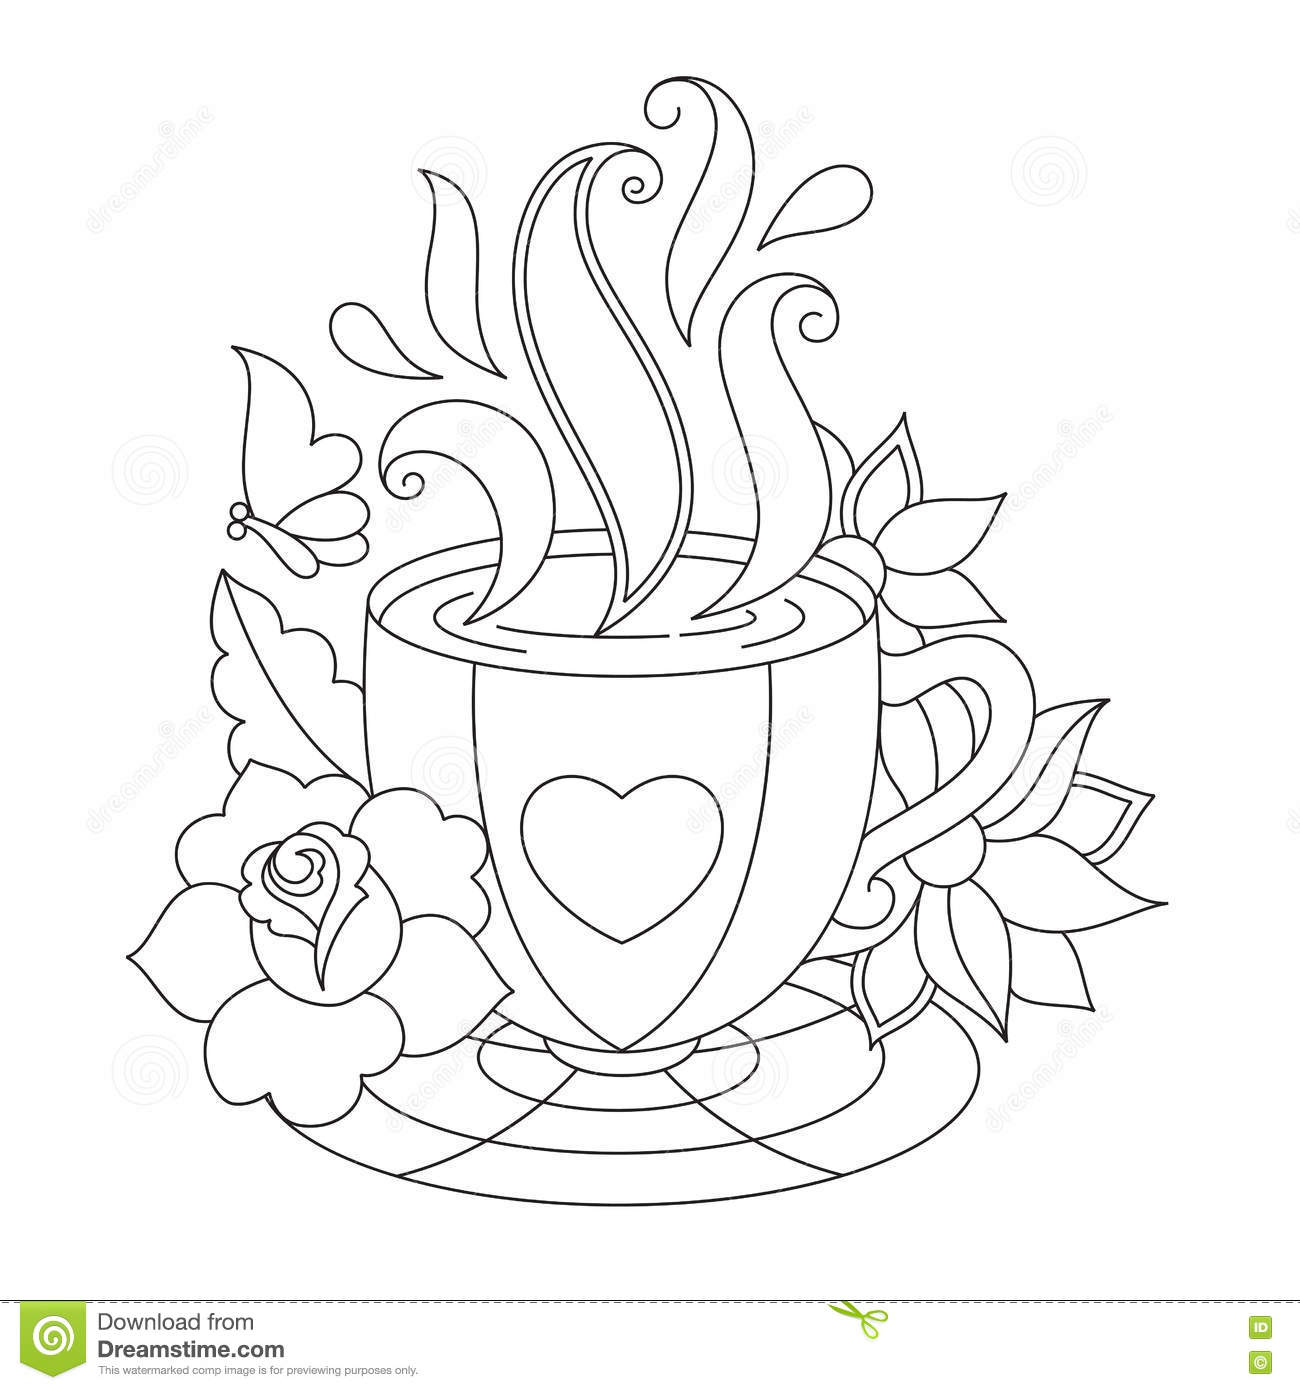 Zentangle Coffee Cup Sketch Coloring Page